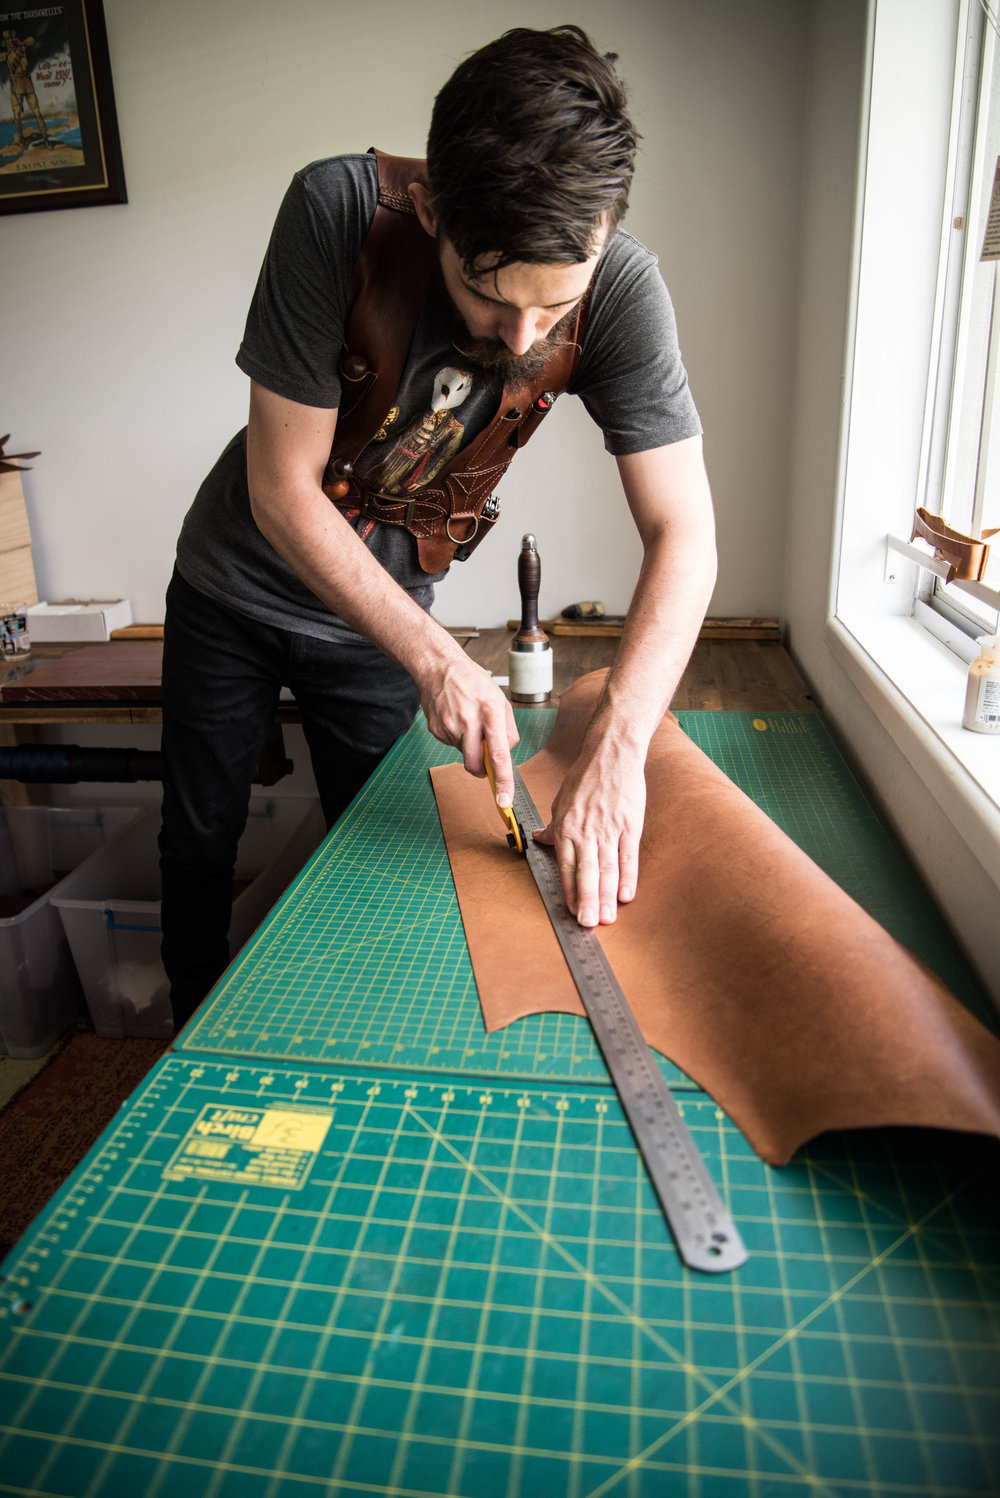 Chris Rose, Rose Leather Crafting, Kangaroo Leather, Rotary Cutter